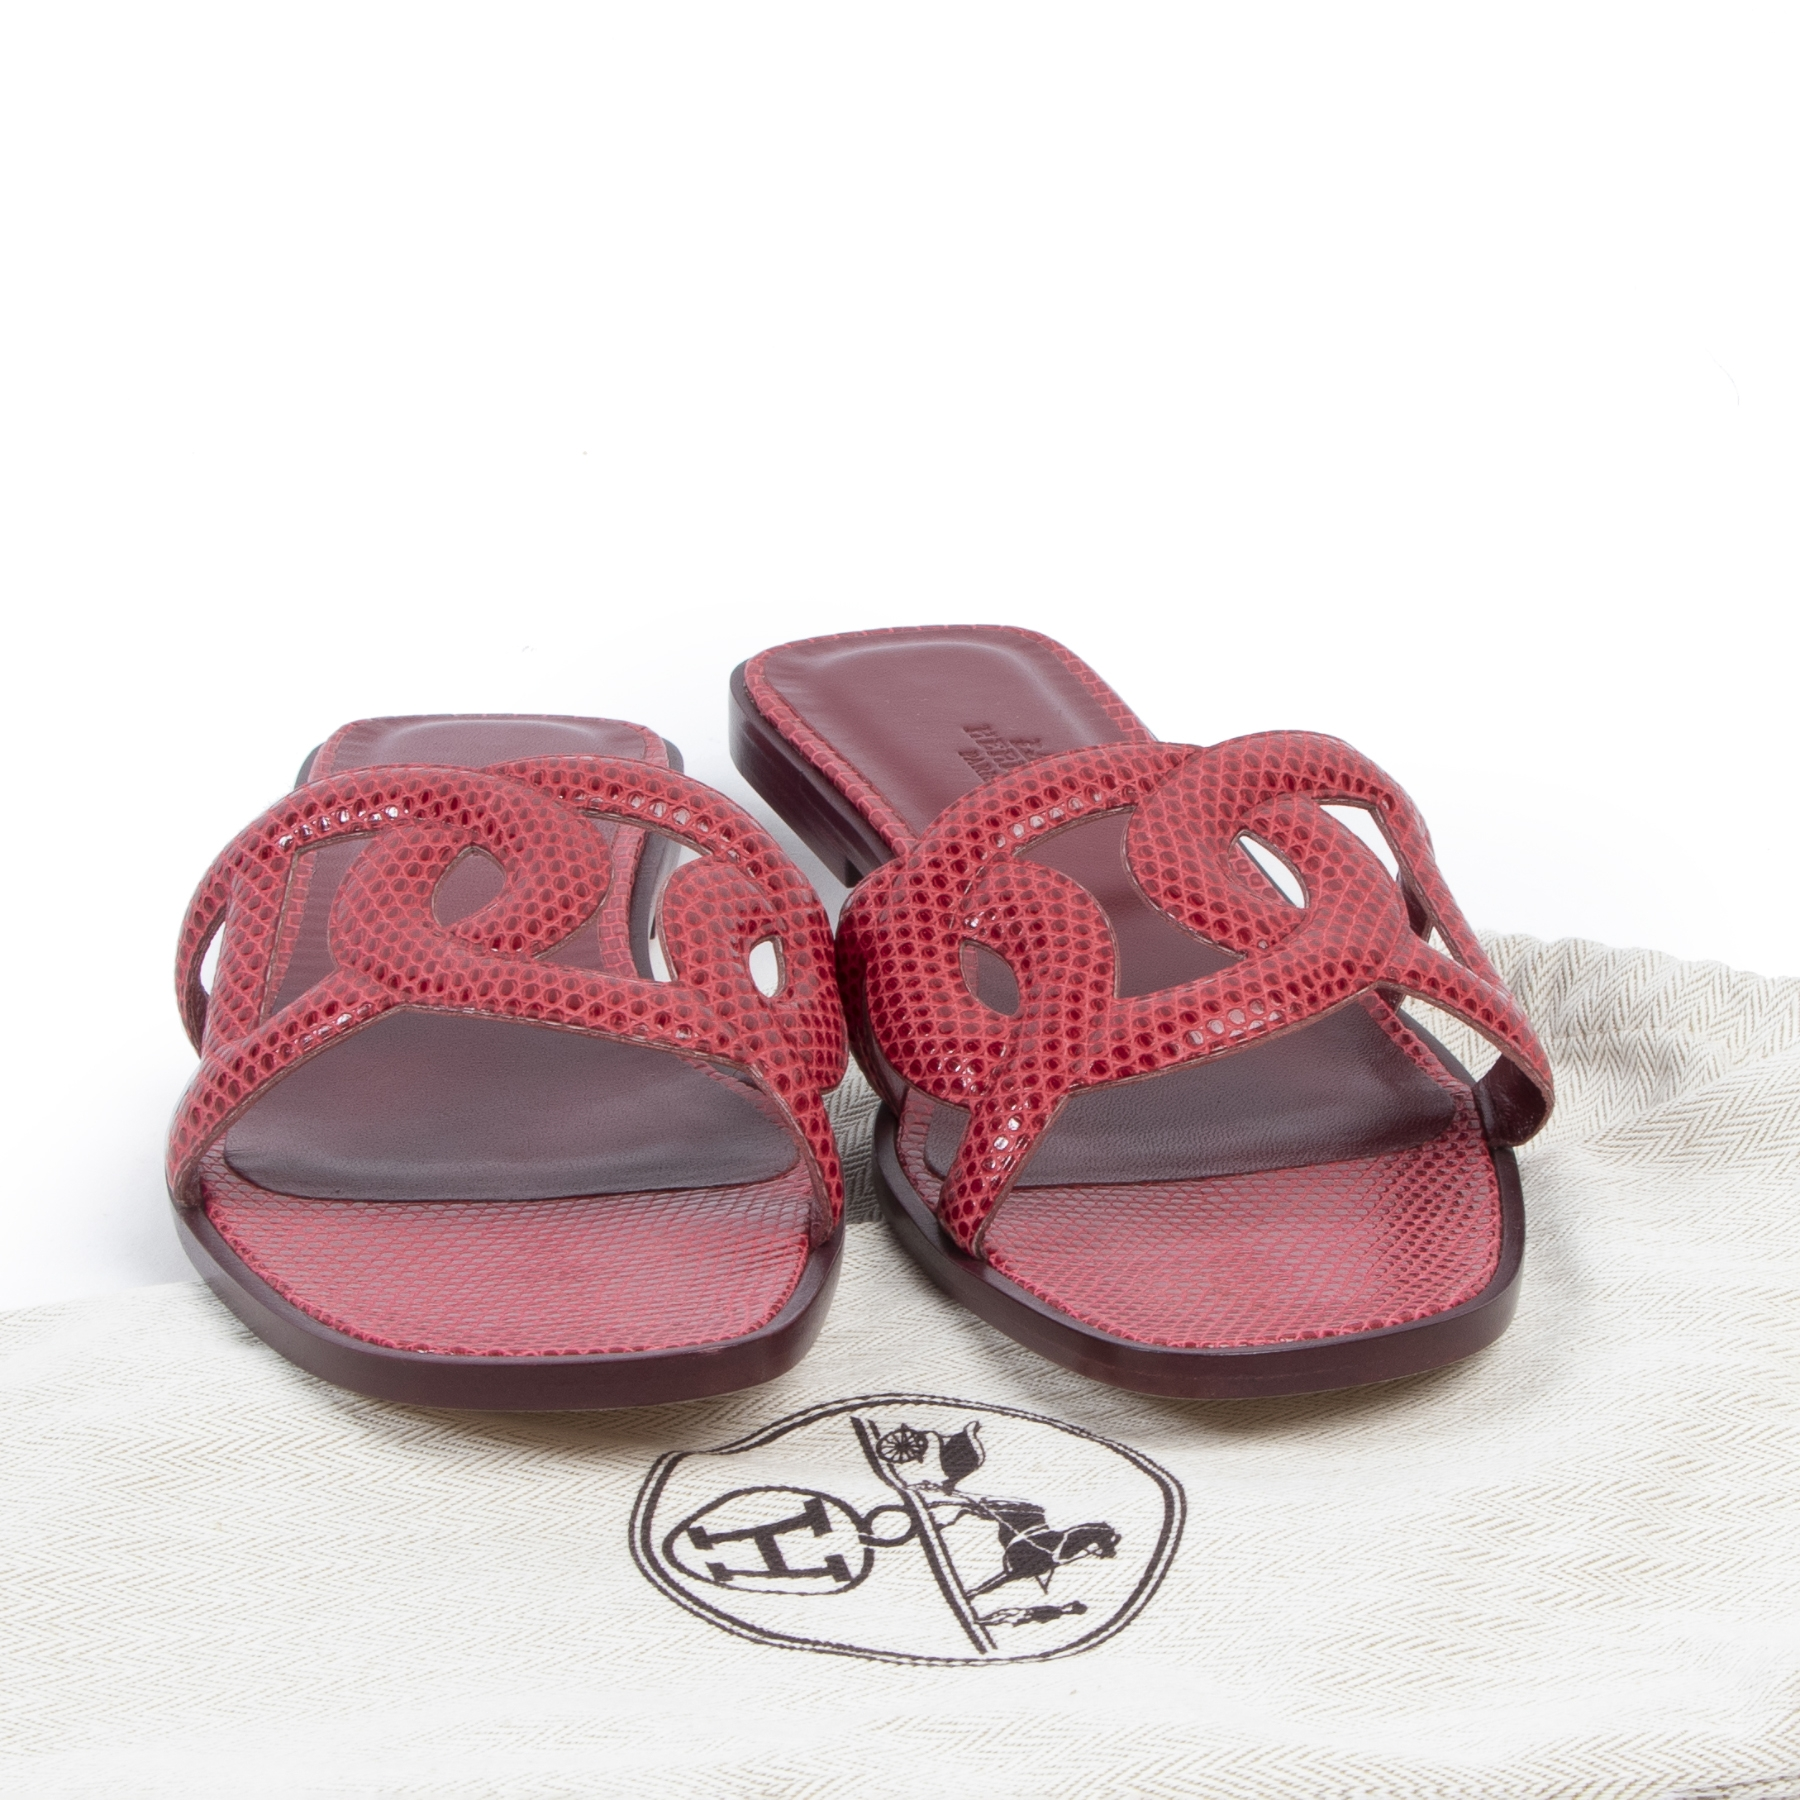 Authentic secondhand Hermès Dark Pink Omaha Sandals - Size 40 designer shoes sandals fashion luxury vintage webshop safe secure online shopping